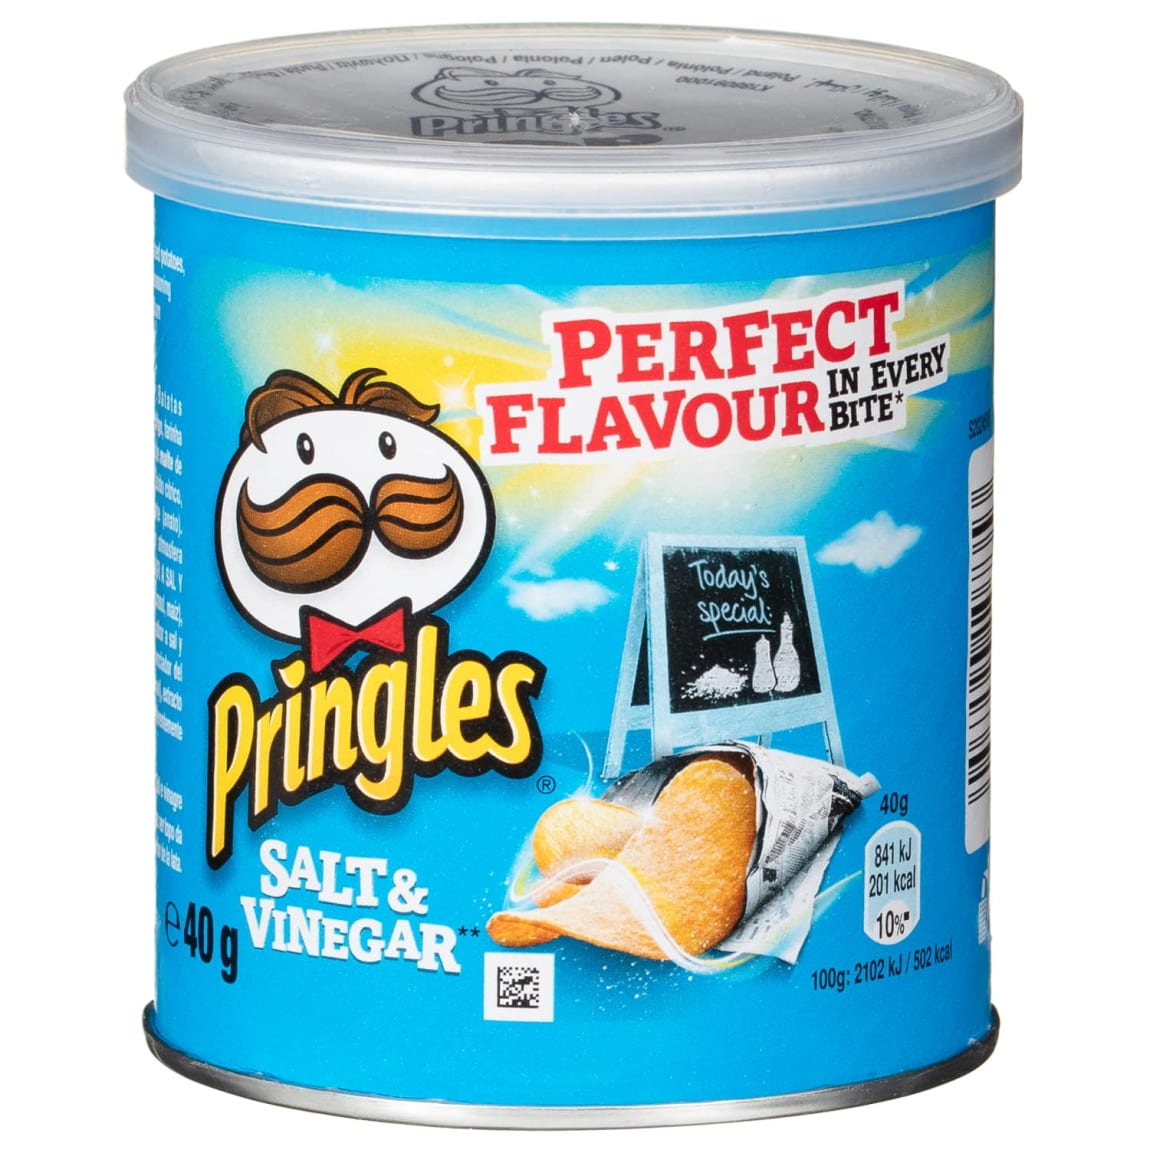 Pringles Salt & Vinegar 40g